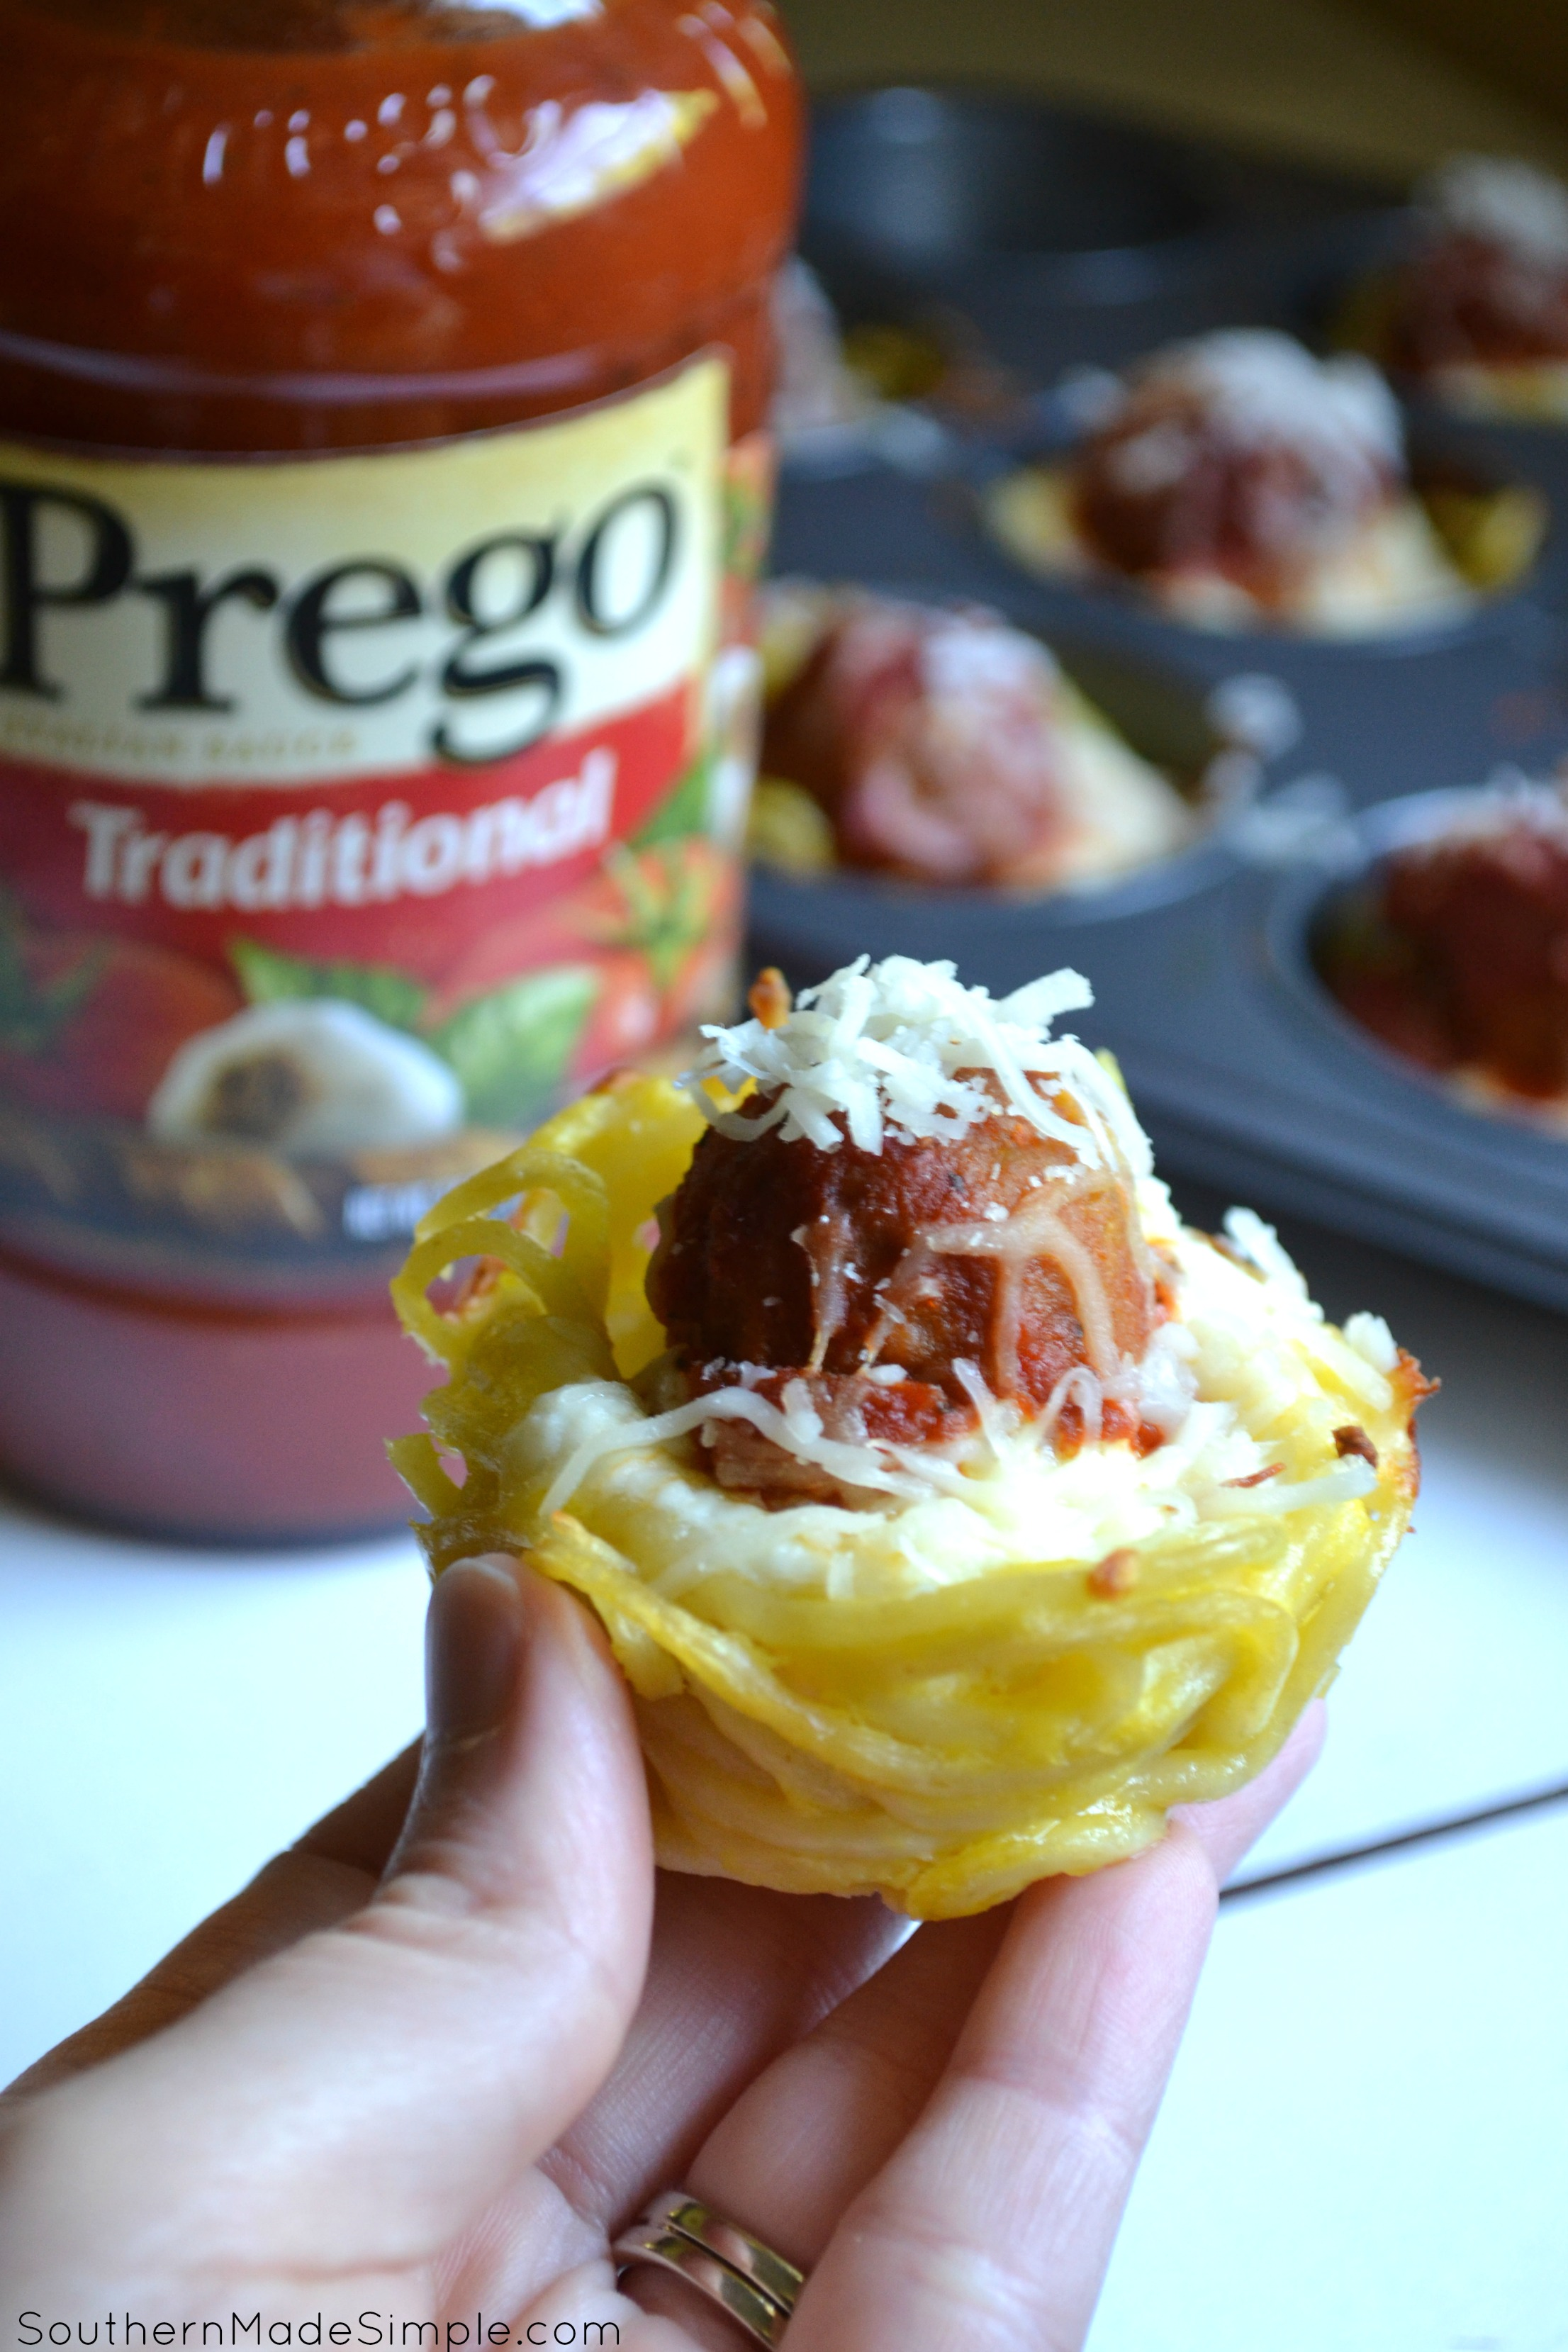 Spaghetti Bombs - a perfect back to school treat that allows you to eat spaghetti on the go (and with your HANDS!) These are so easy to make and are way more fun to eat then traditional spaghetti! #CampbellSavings #ad